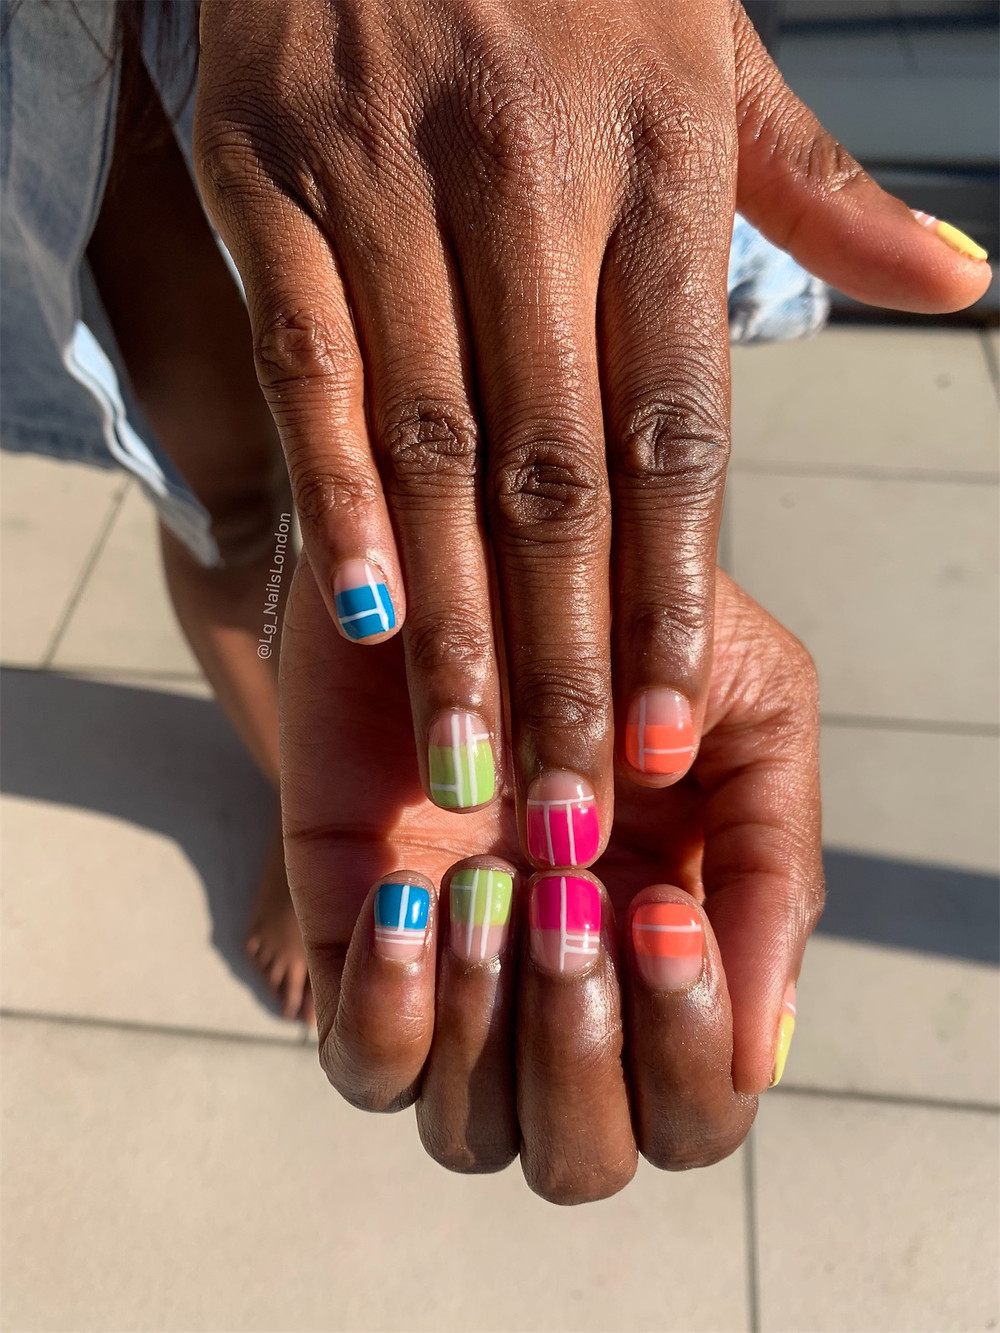 colourful manicure by Lg nails london for patricia bright